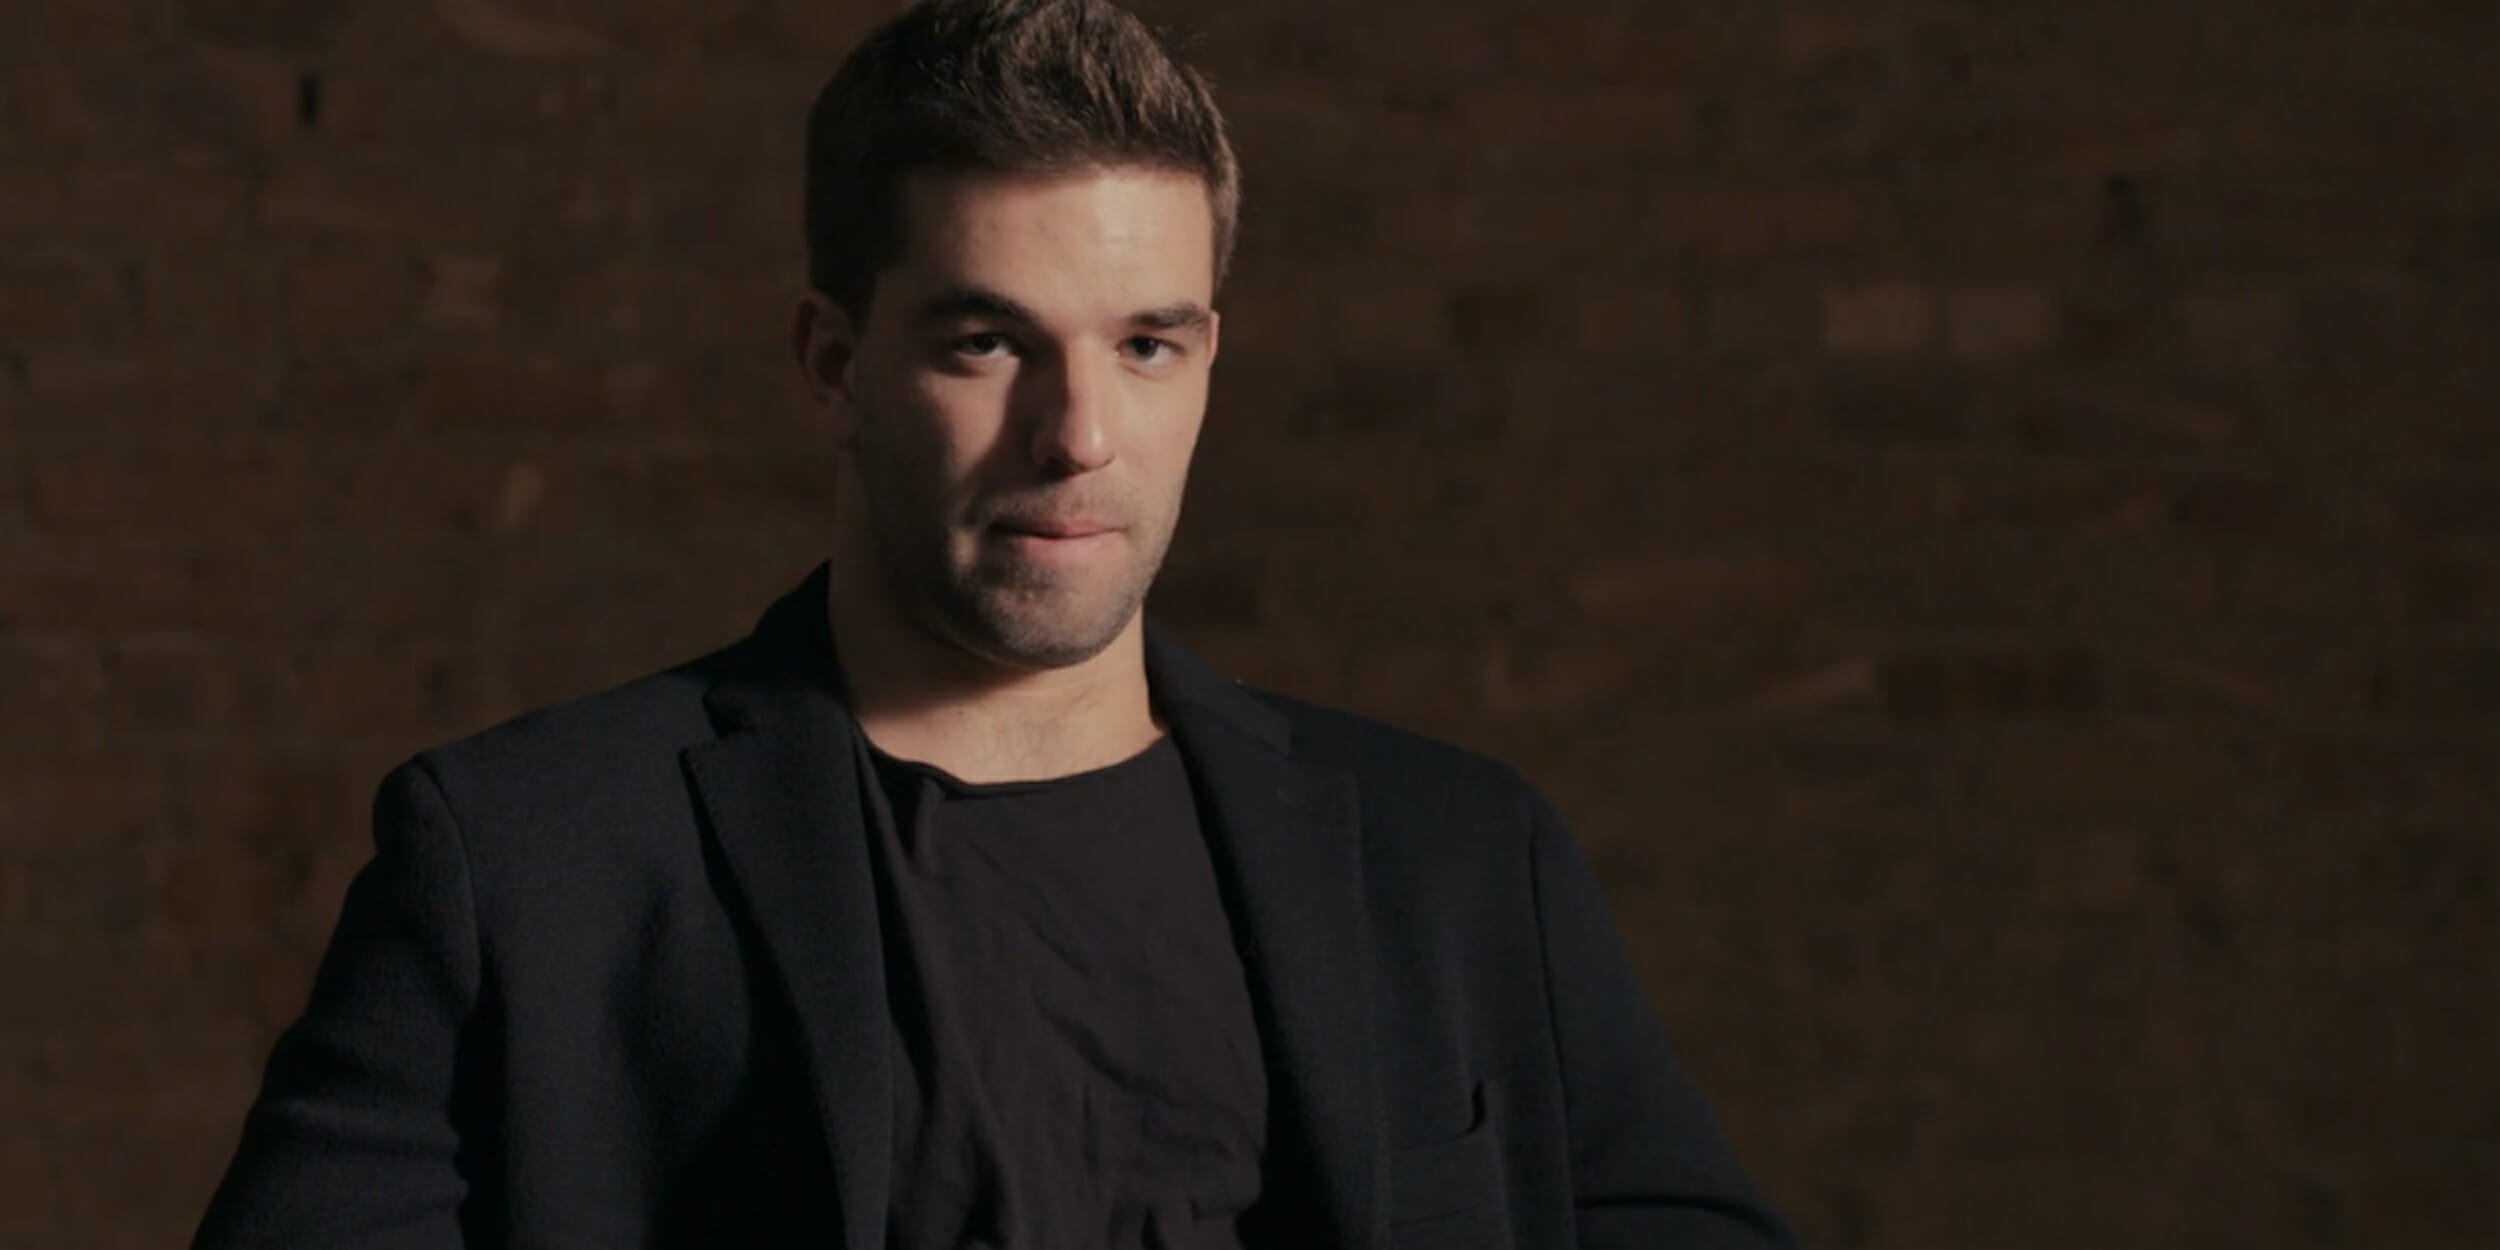 The Fyre Festival was the con of a generation. Two streaming docs tell the story.